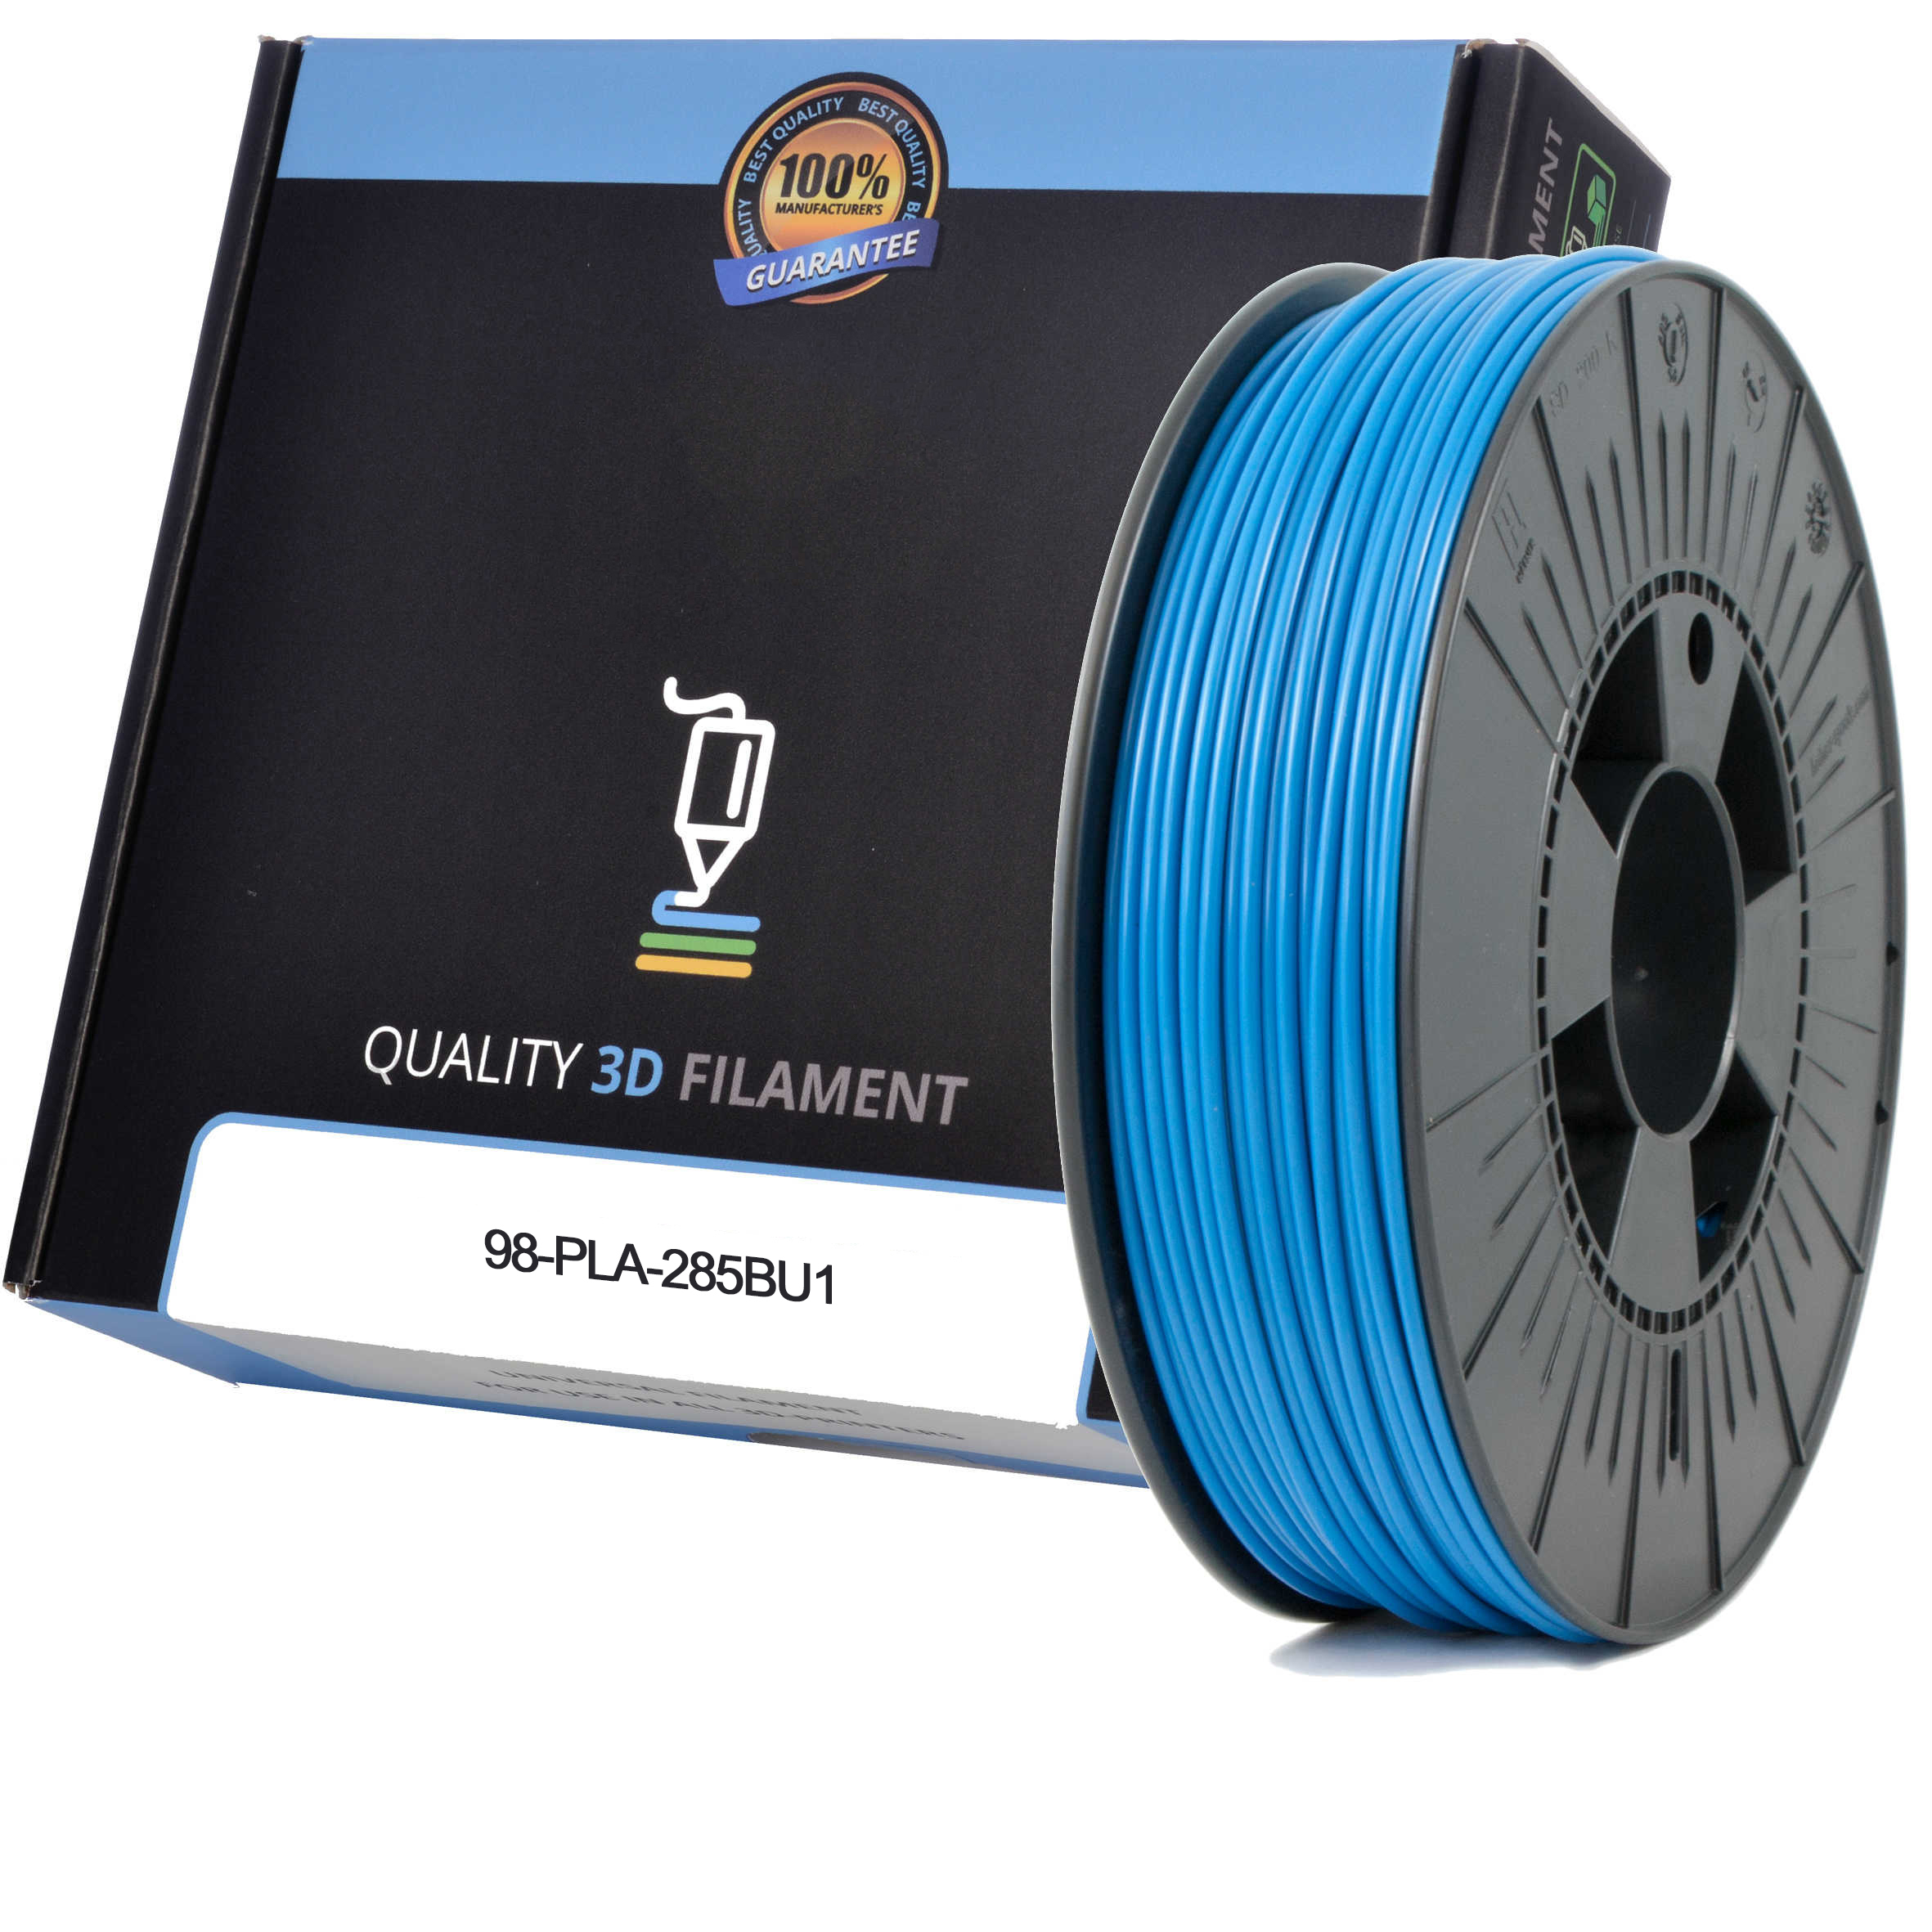 Premium Compatible PLA 2.85mm Sky Blue 0.5kg 3D Filament (98-PLA-285BU1)